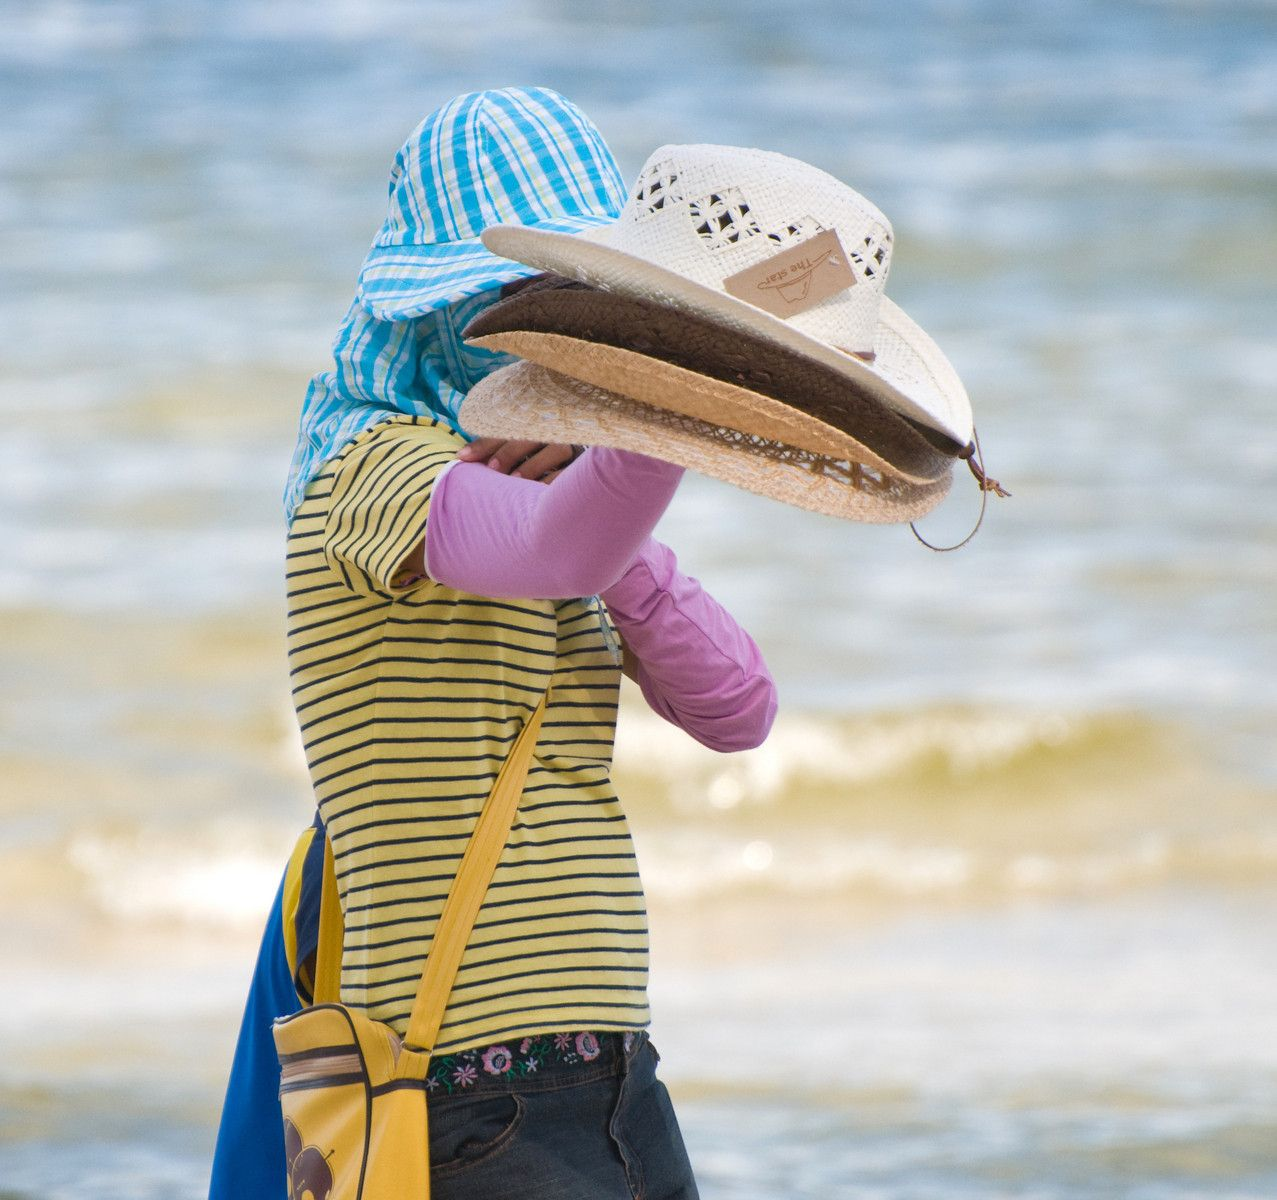 Woman selling hats at the beach in Hua Hin, Thailand, in